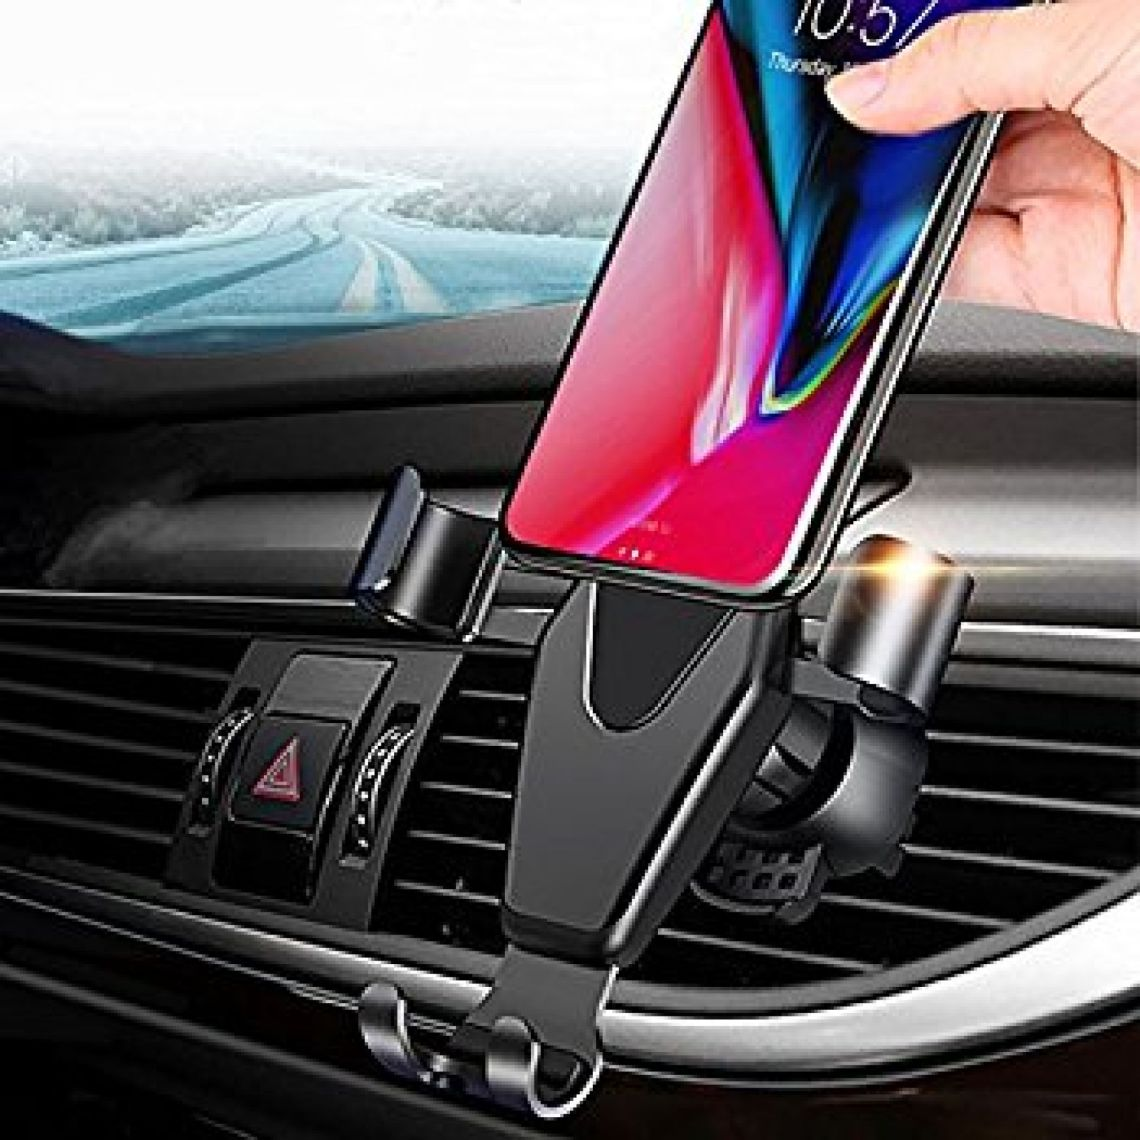 Amazon.com: Car Phone Mount, Sunhanny Universal Gravity Auto Lock Air Vent Phone Holder, Smart No Touch One Hand Operating Design for iPhone X/8/8Plus/7/7Plus/6s/6Plus, Samsung S8/S7,Huawei: Cell Phones & Accessories